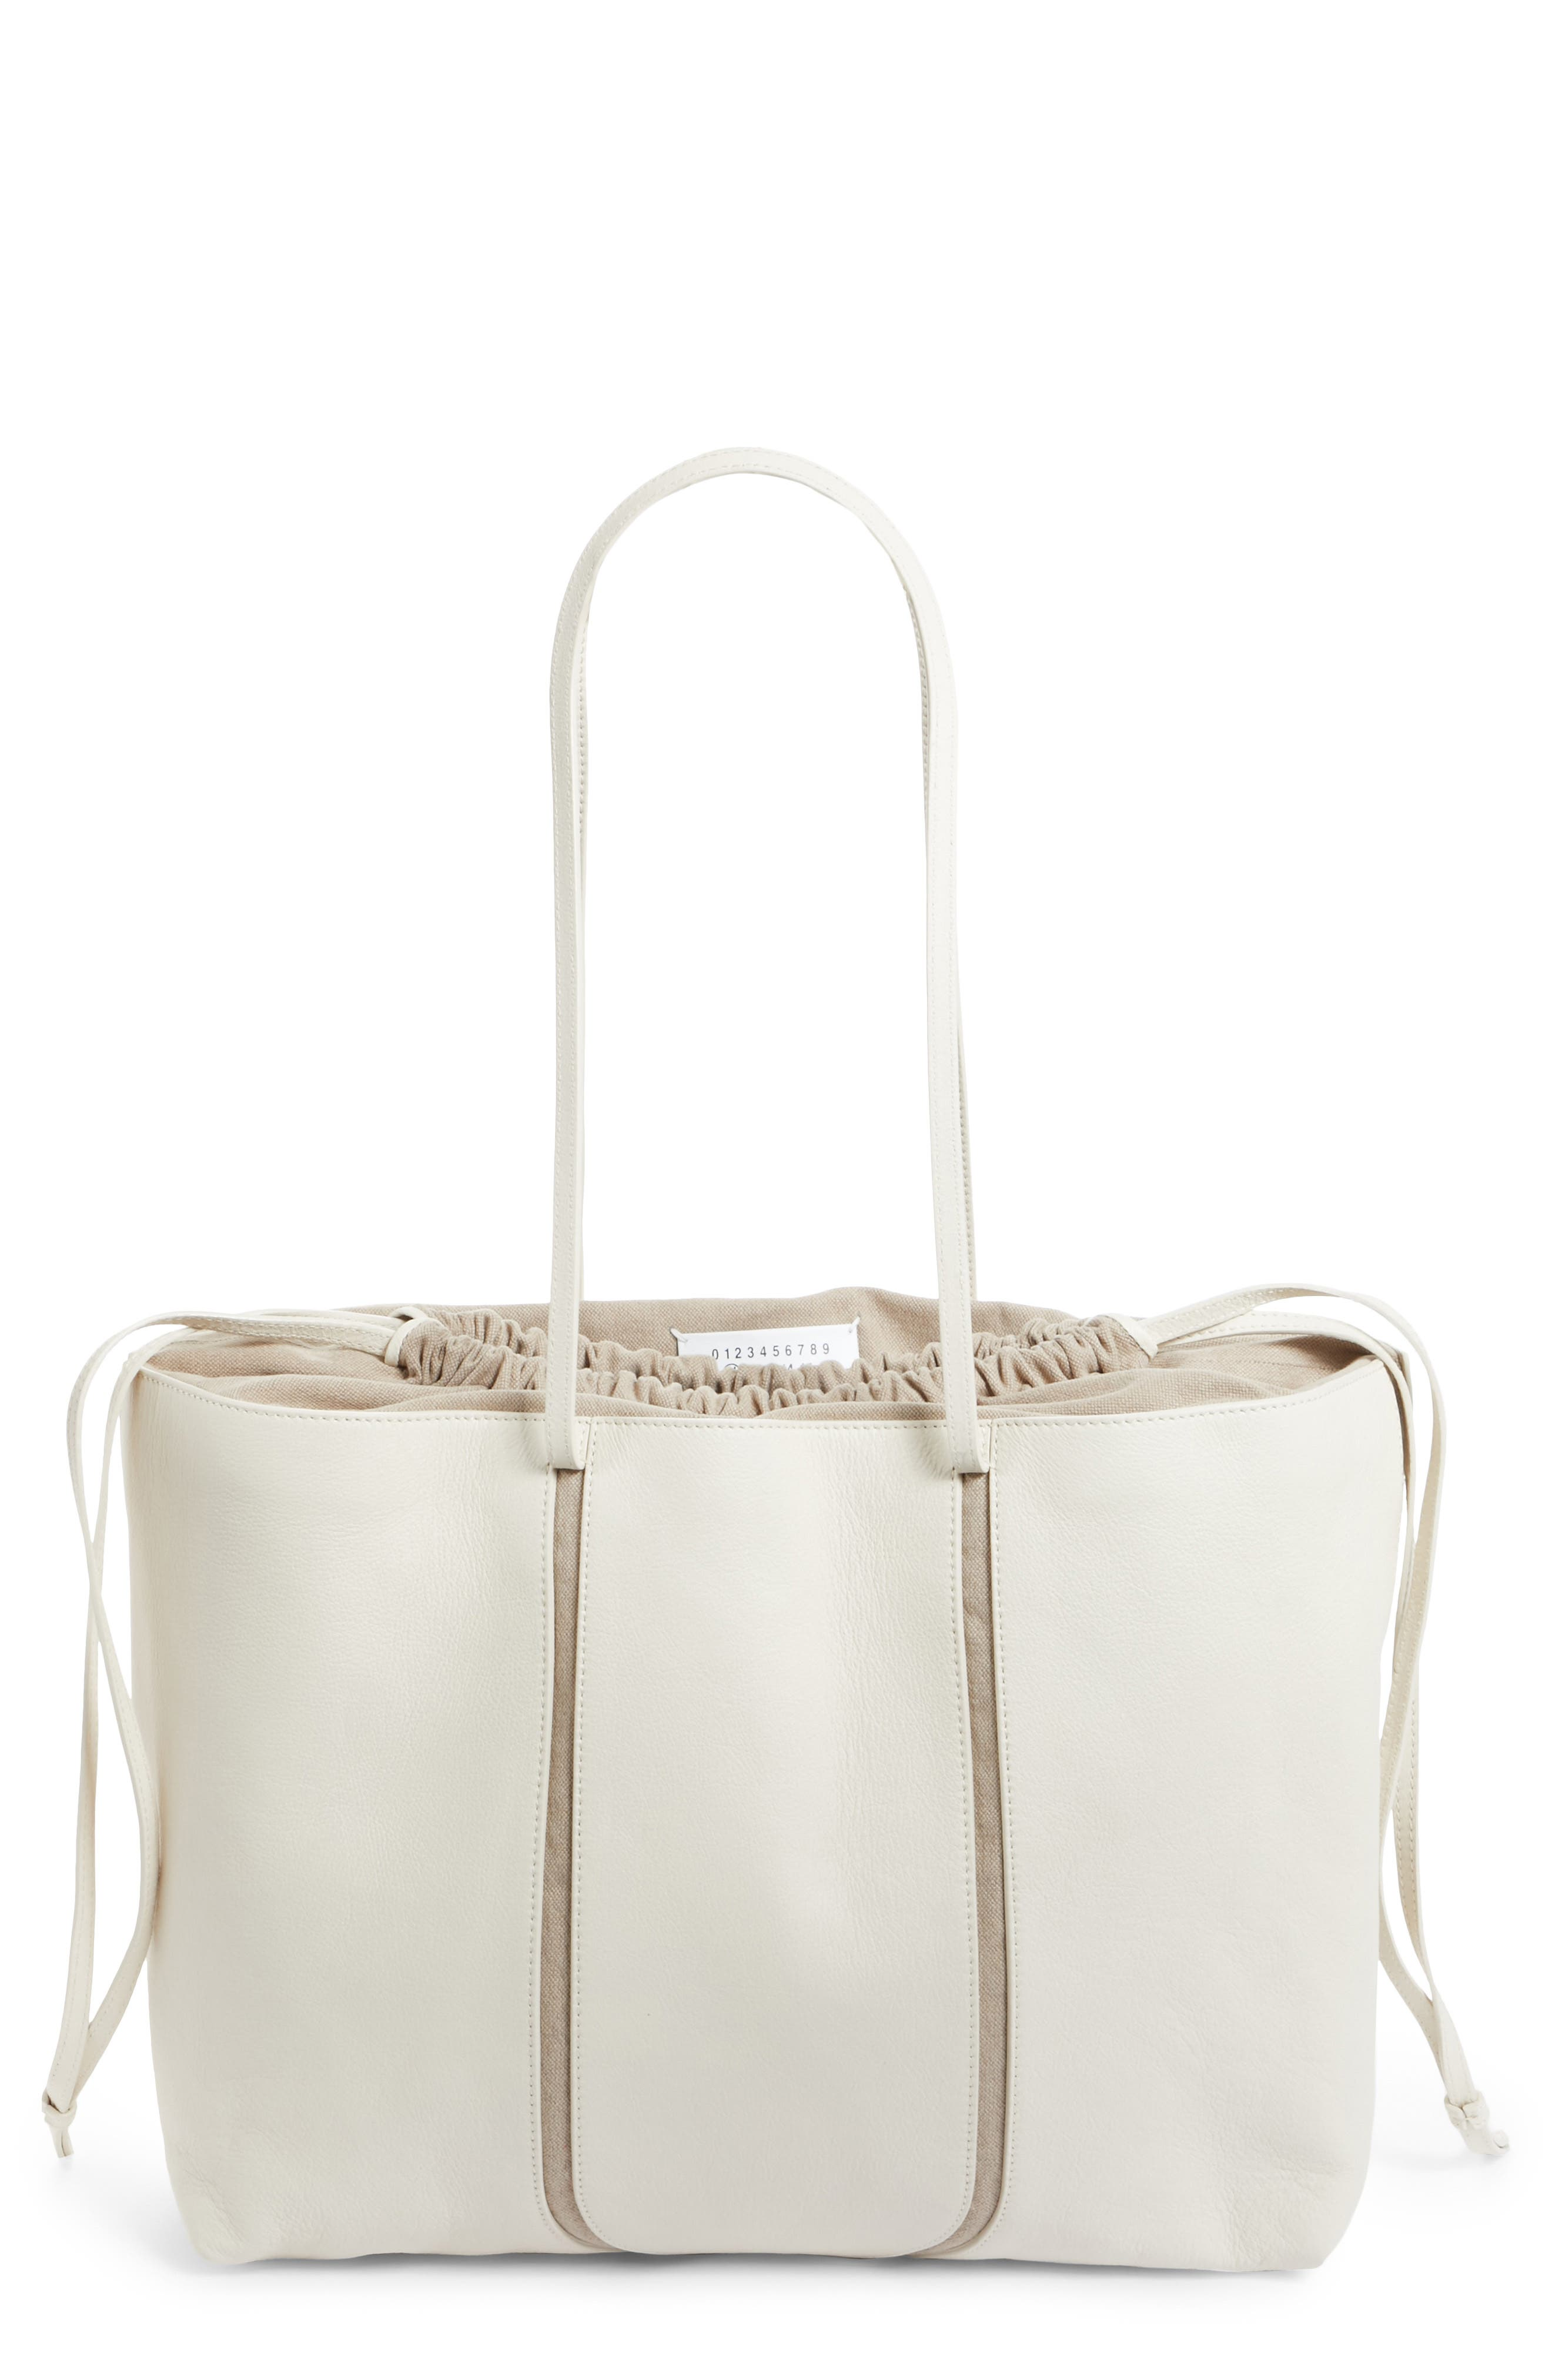 Calfskin Leather Tote,                             Main thumbnail 1, color,                             274